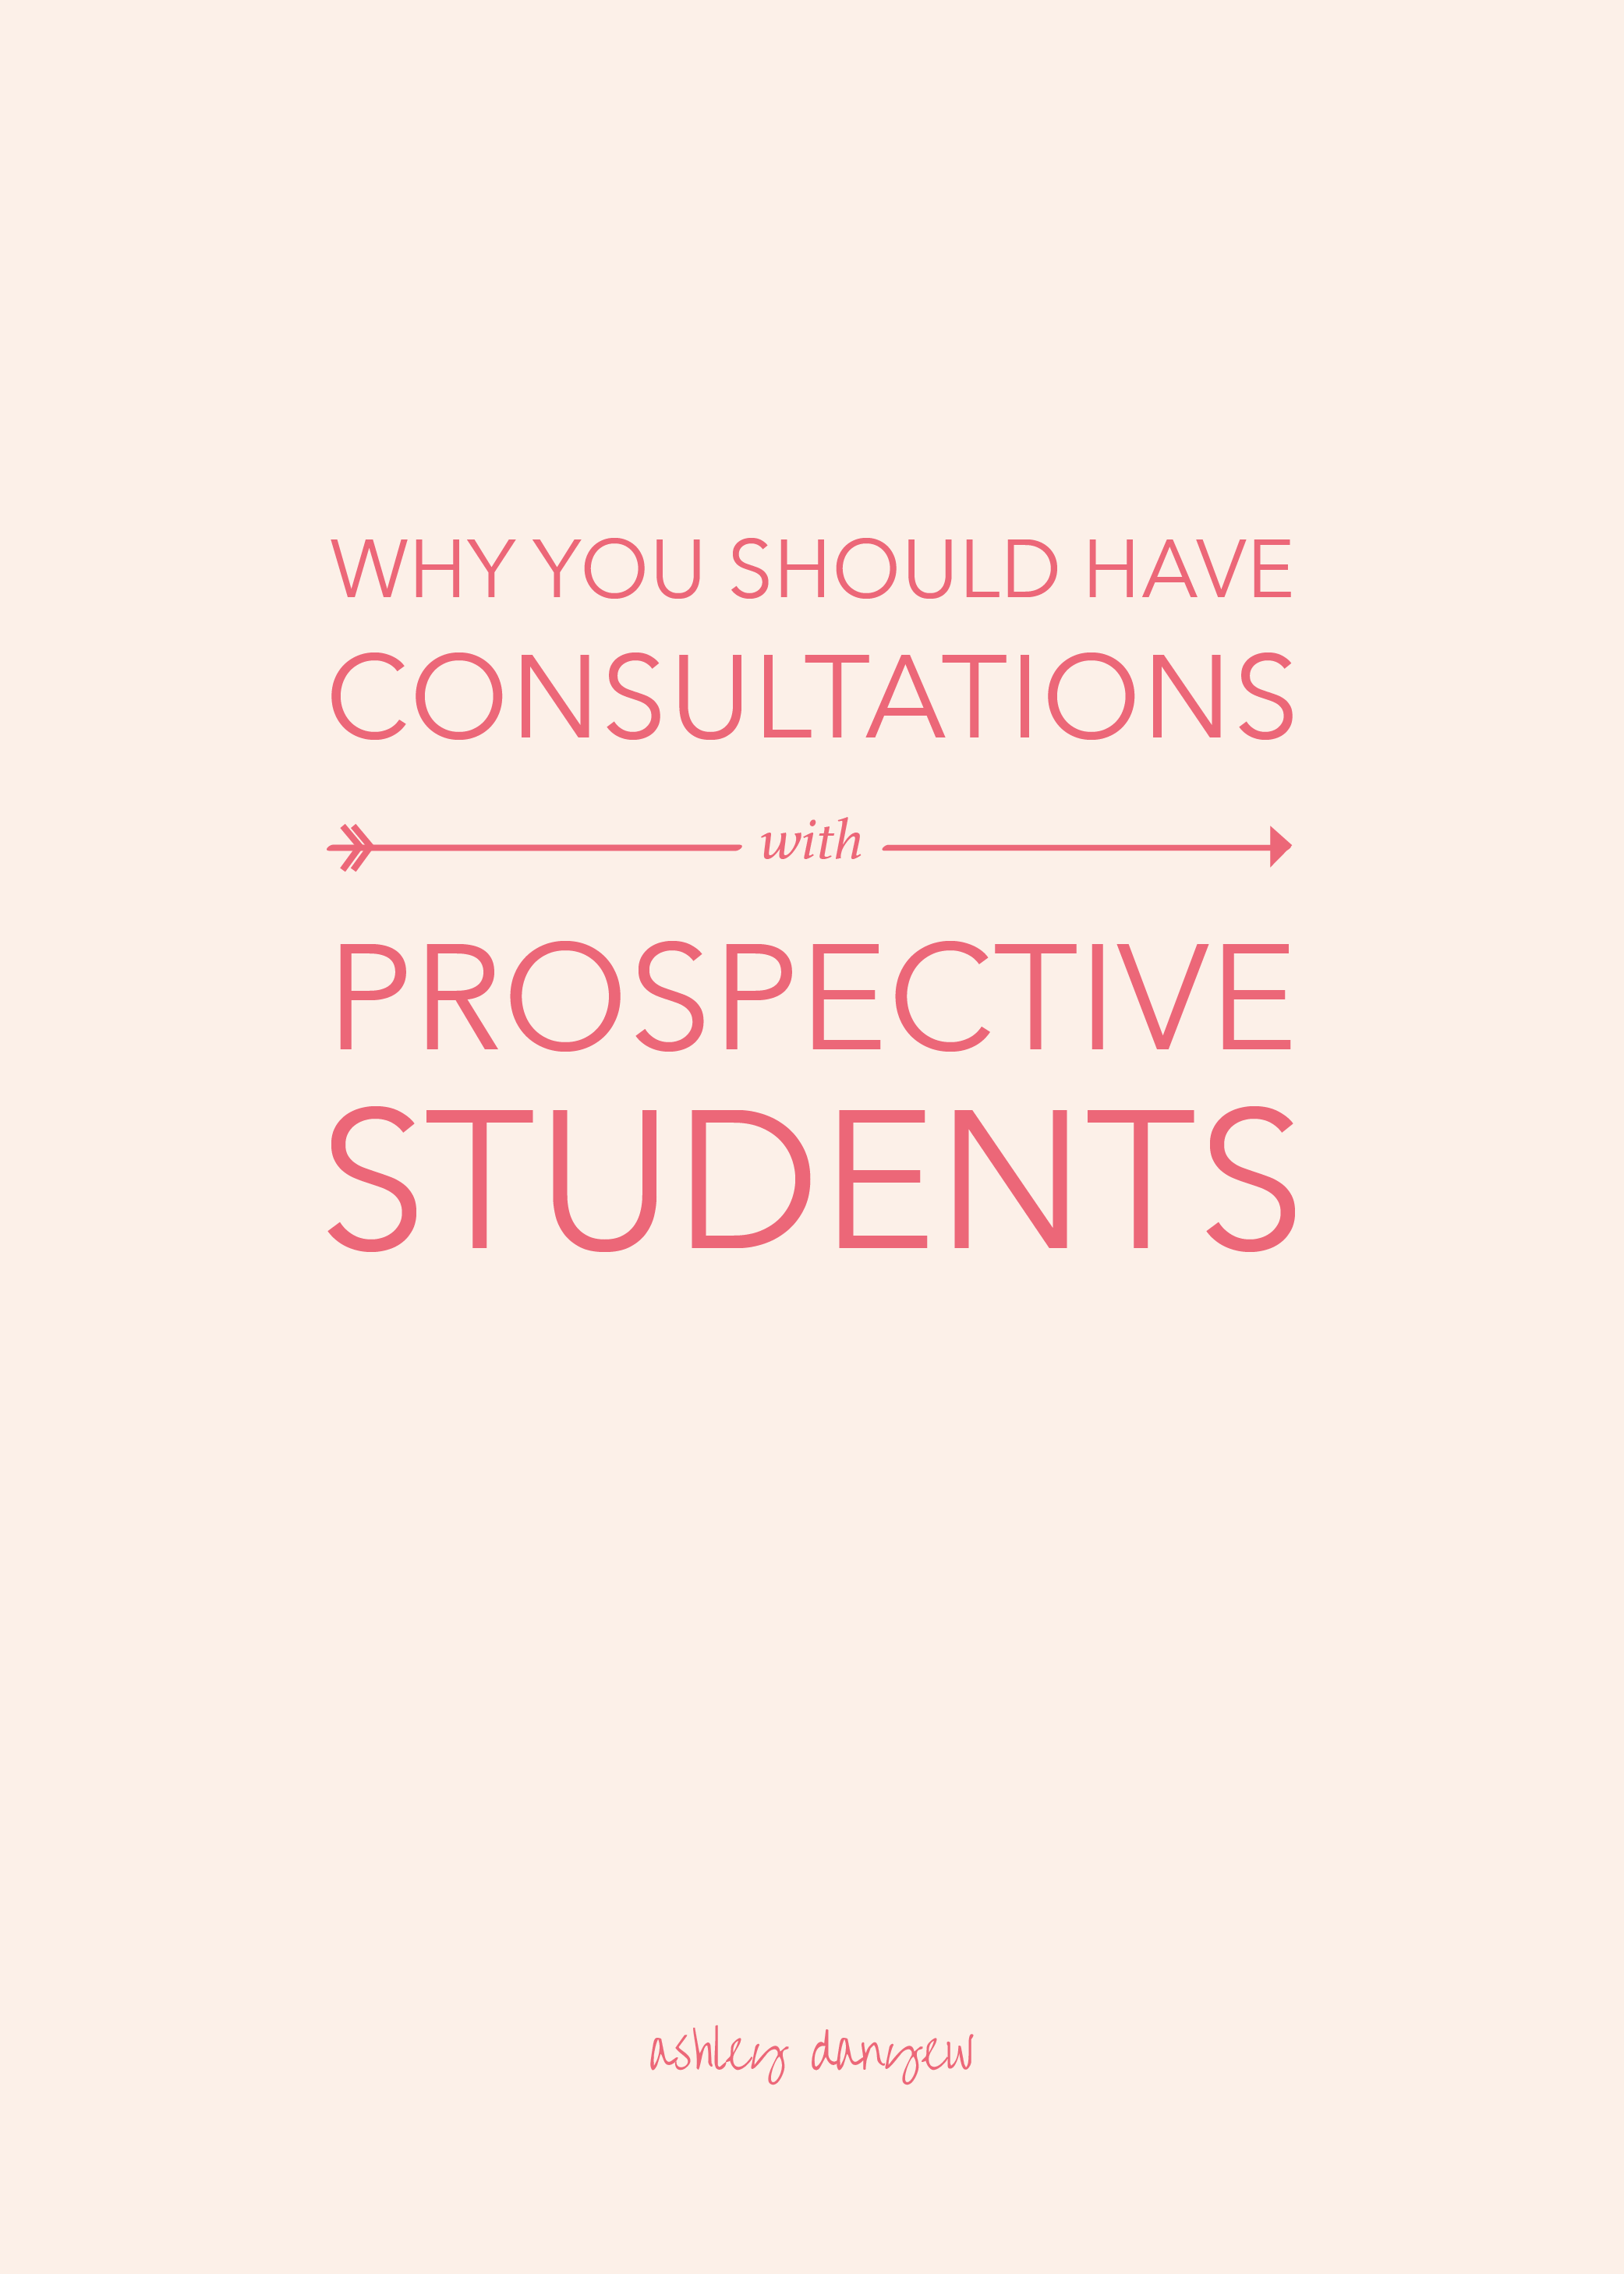 Why You Should Have Consultations With Prospective Students-01.png